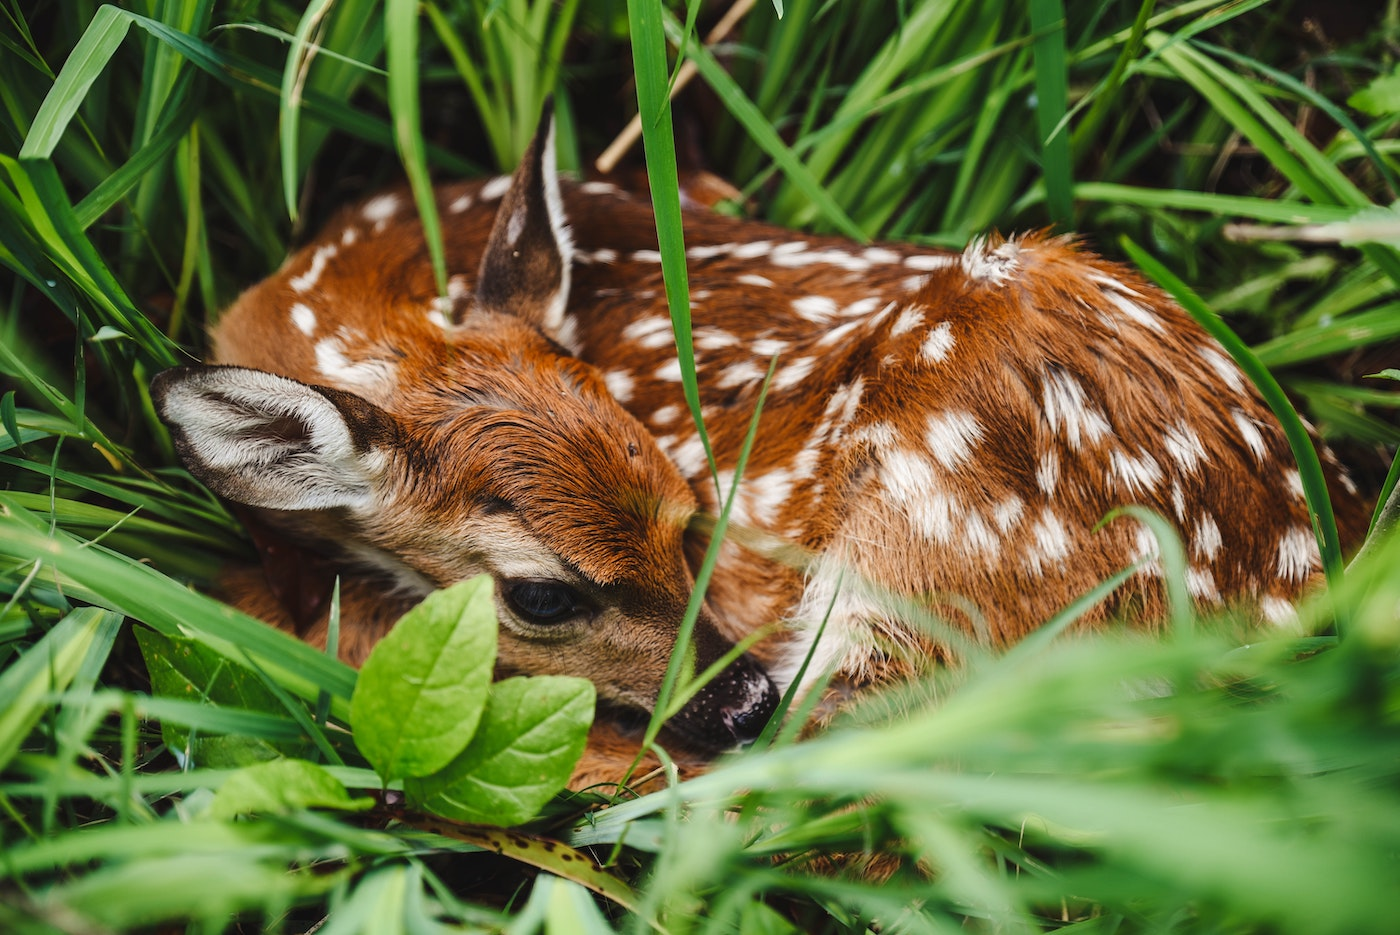 Fawn curled up in the grass